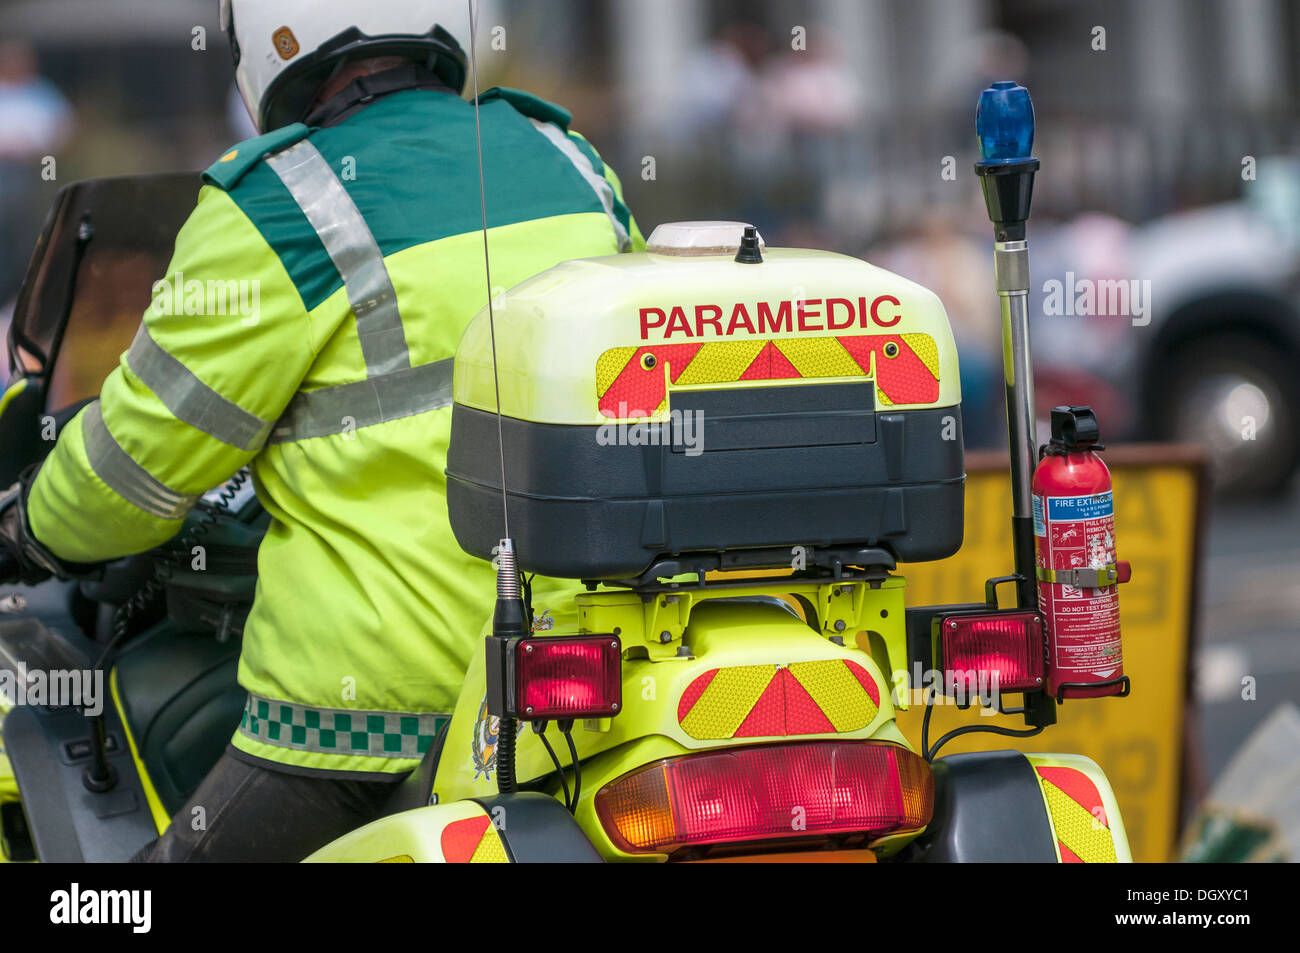 UK Paramedic close up on a motorbike ready to save lives. View from the rear behind. Close up (macro) - Stock Image